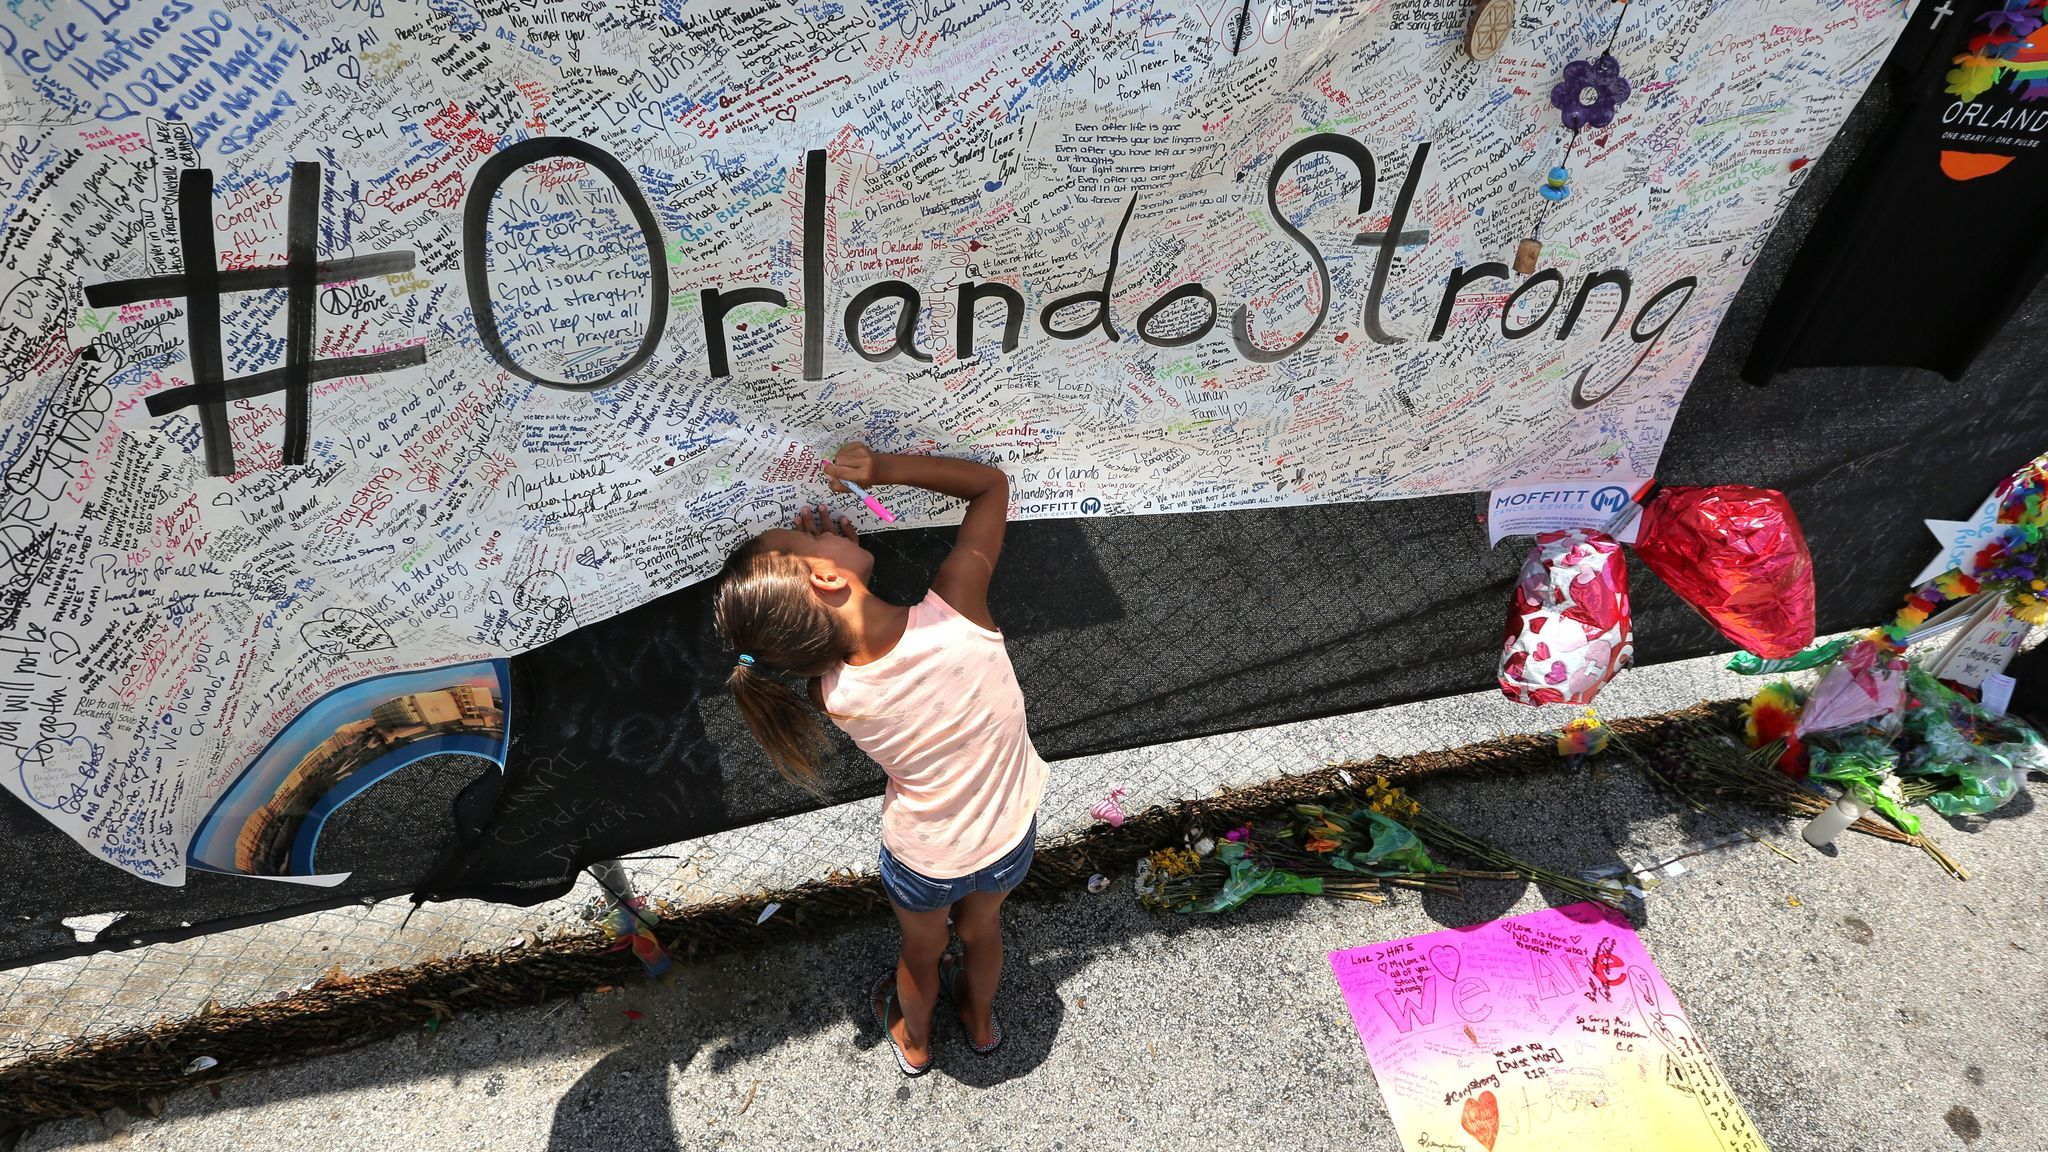 Kyndall Whitley, 7, signs a poster at the roadside memorial at Pulse nightclub.